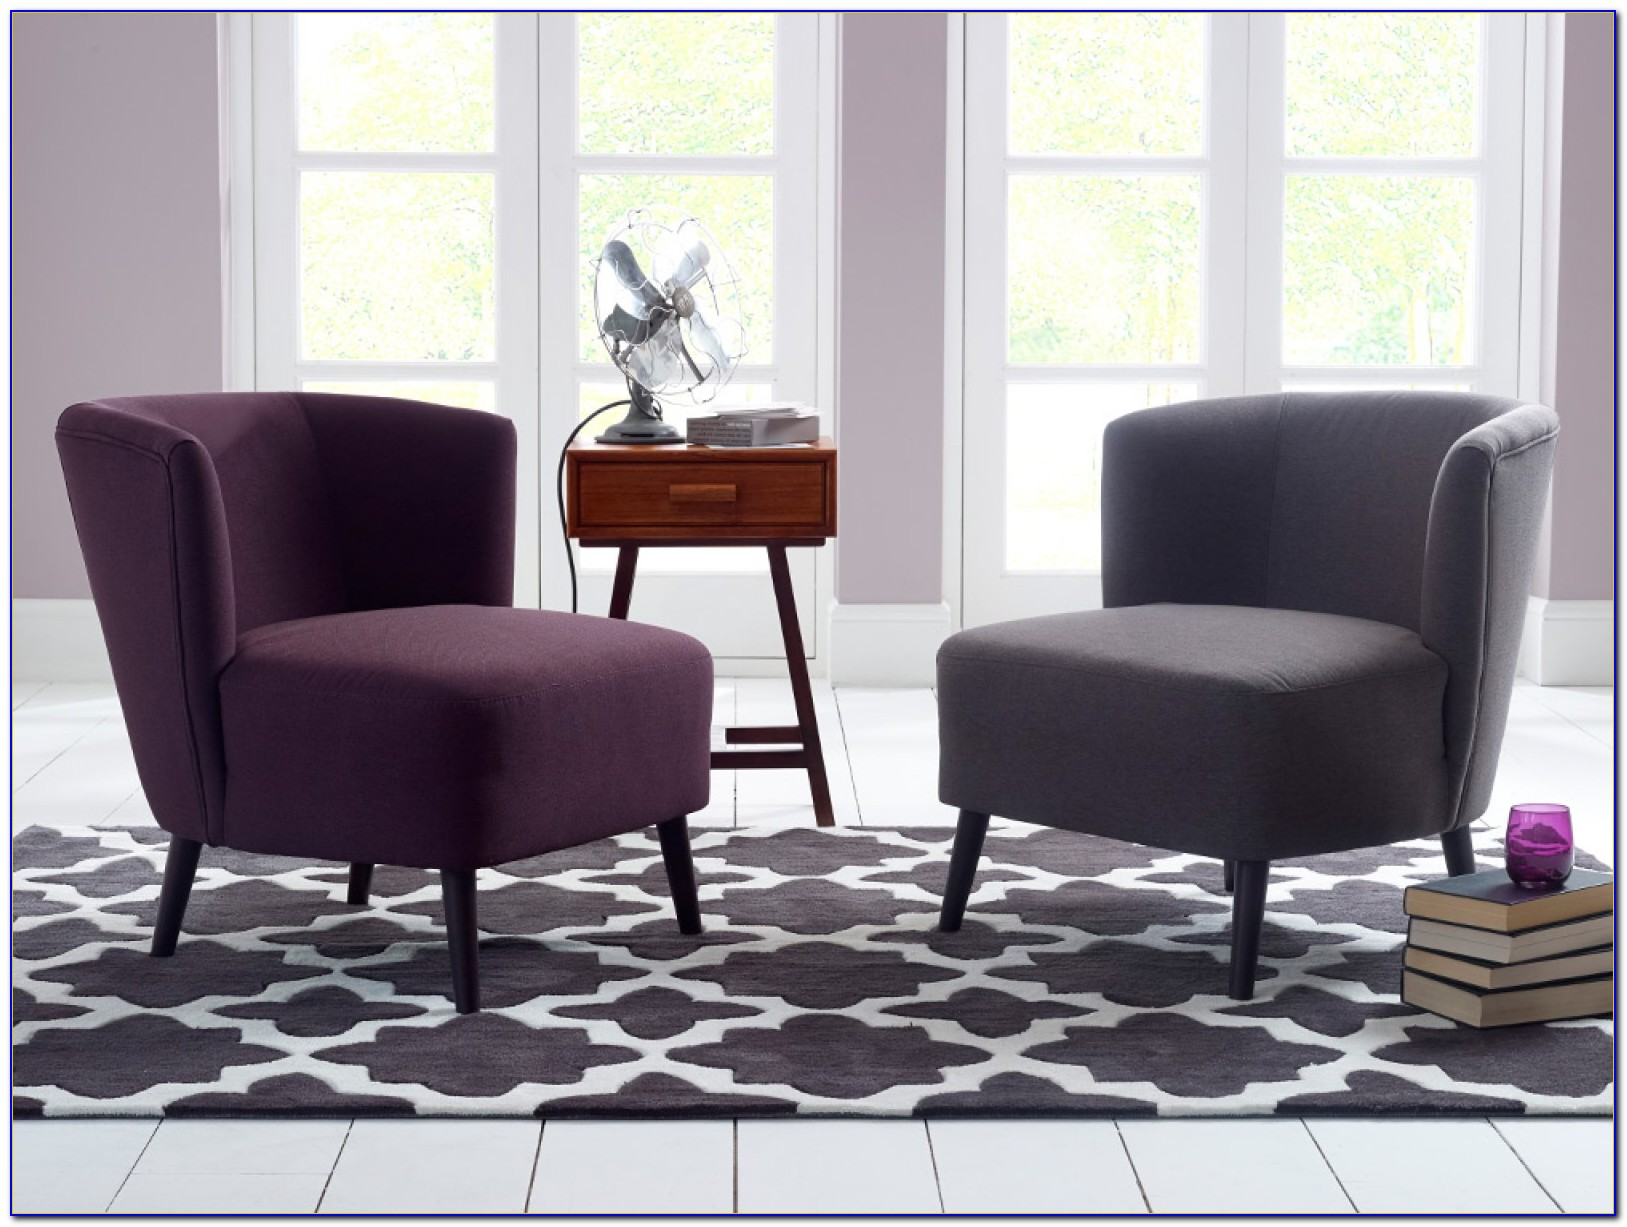 Accent Chair And Table For Bedroom